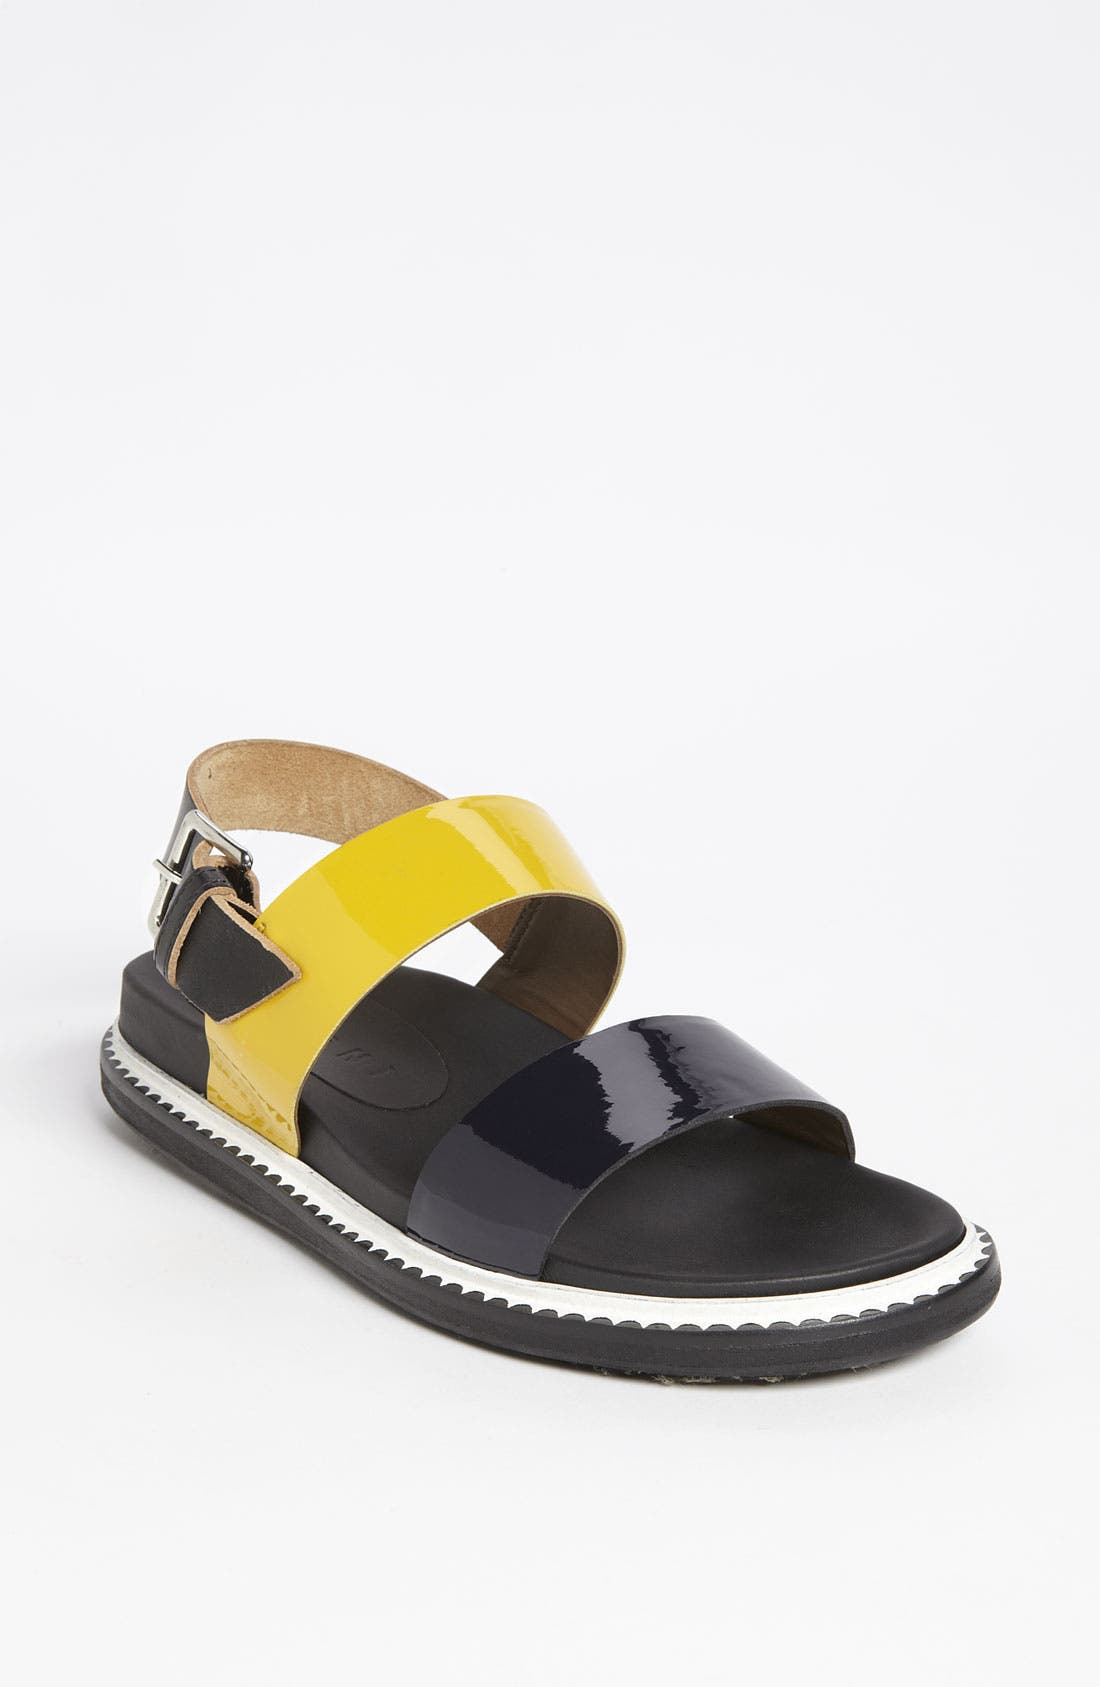 Alternate Image 1 Selected - Marni Two Strap Sandal